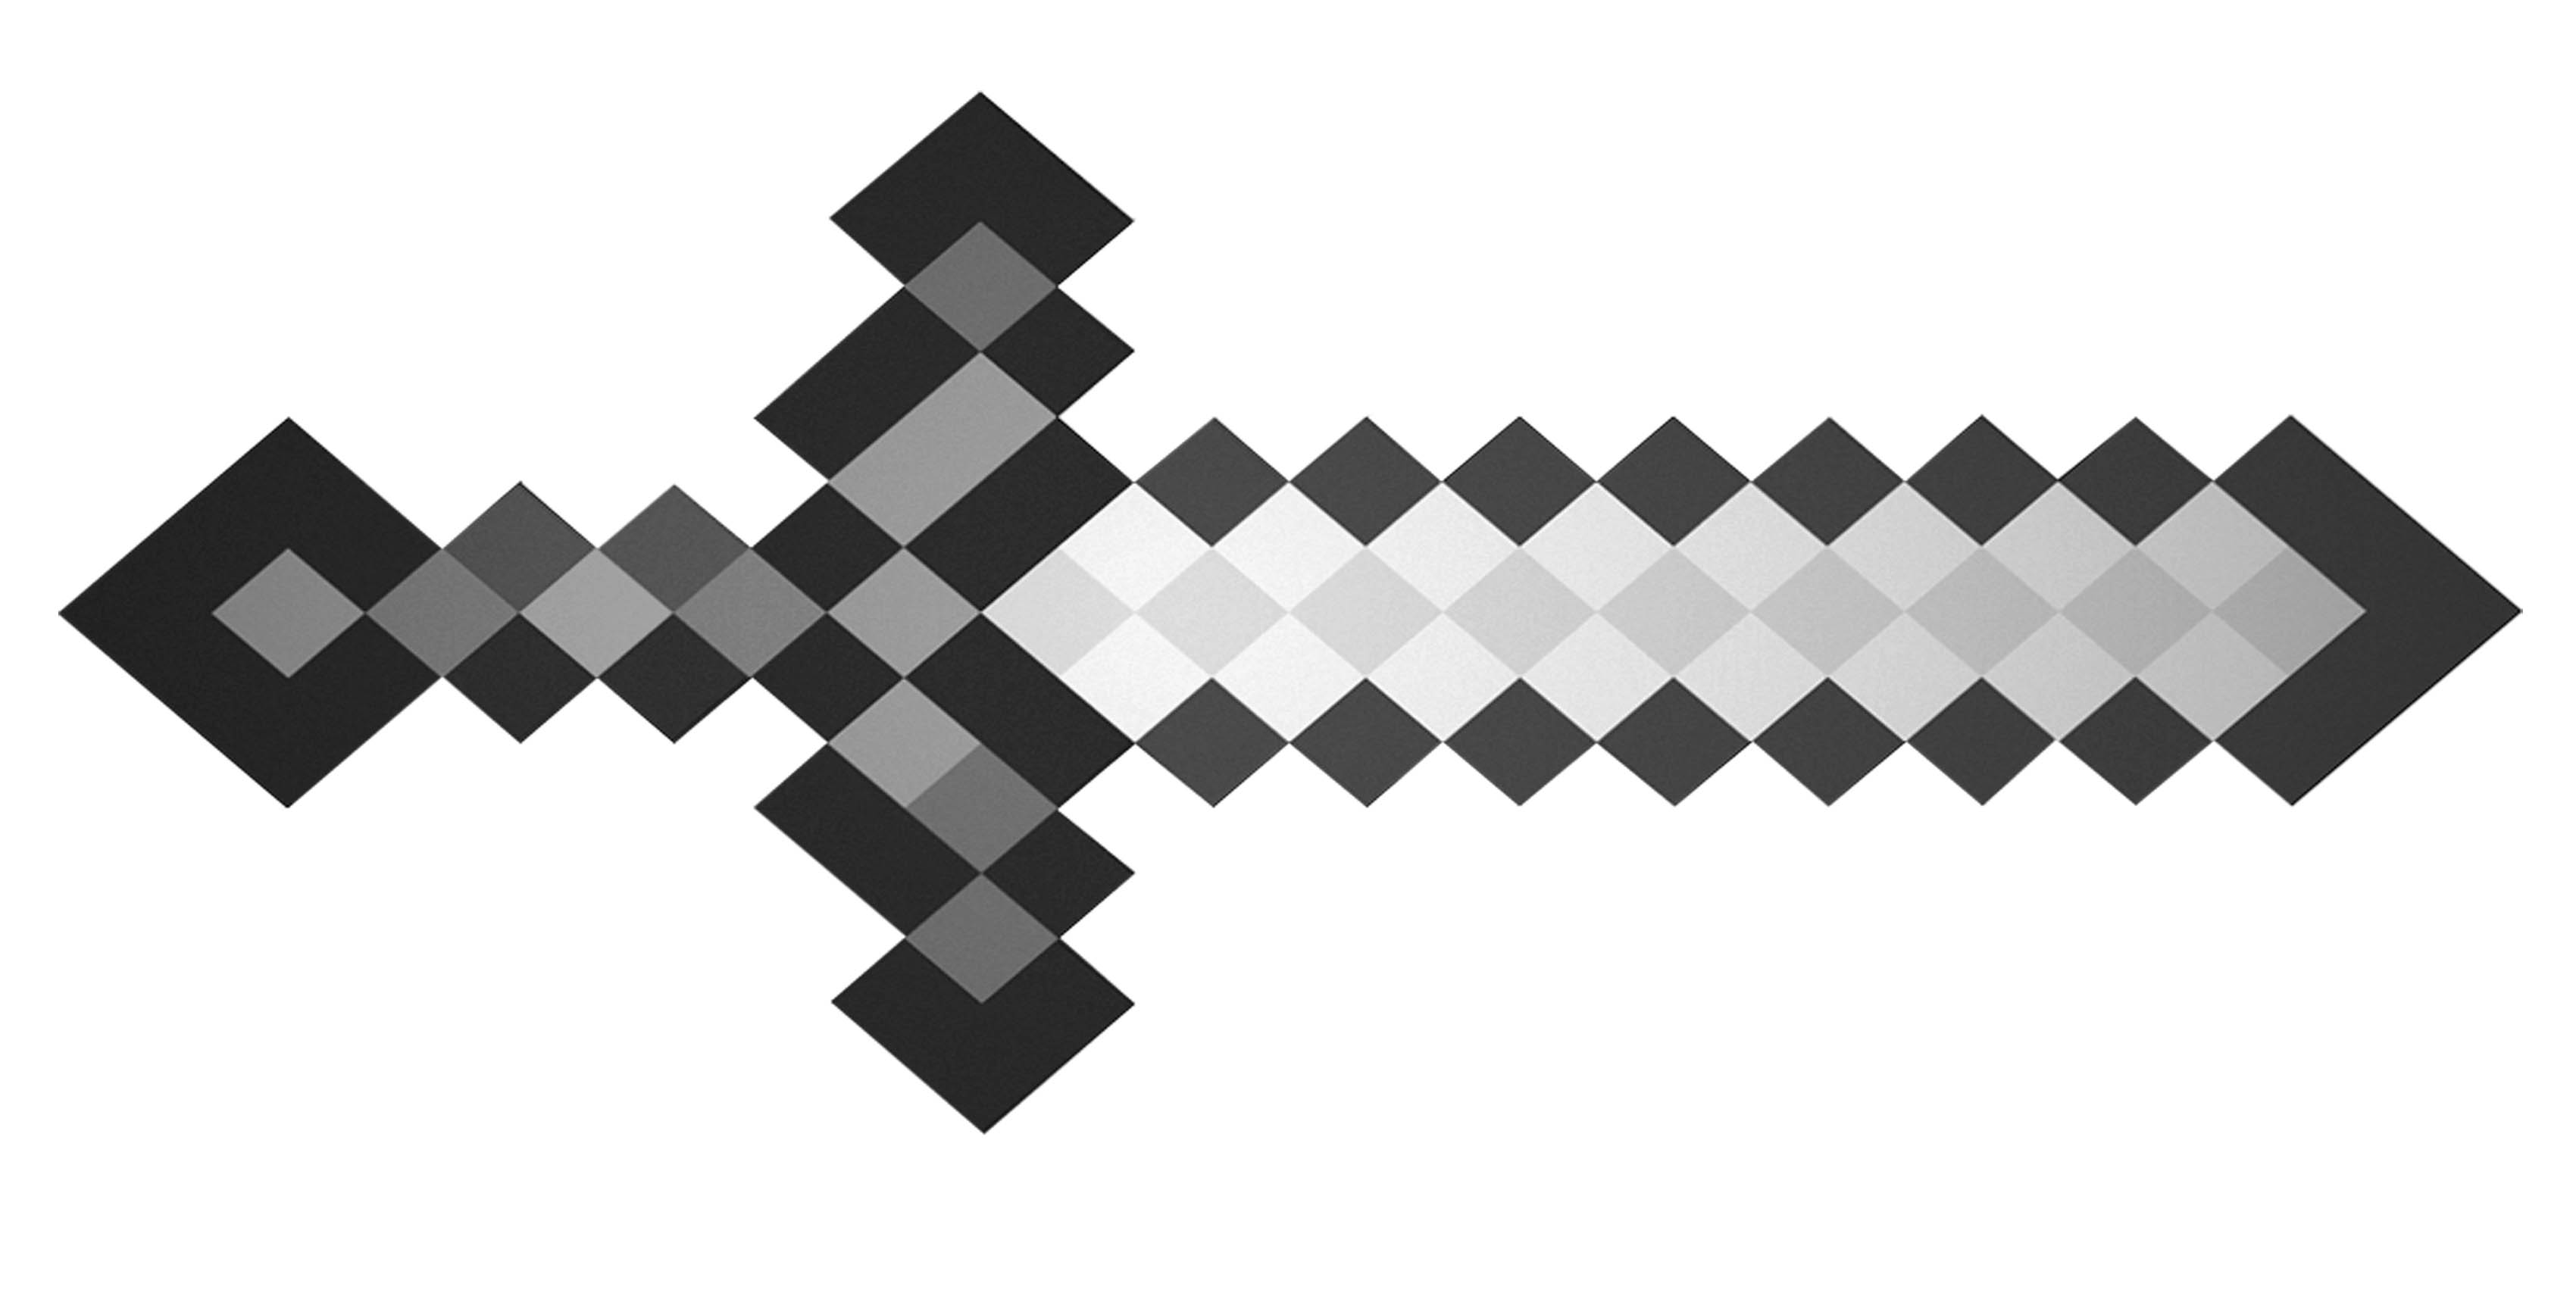 minecraft weapons coloring pages minecraft sword coloring pages free large images weapons coloring minecraft pages